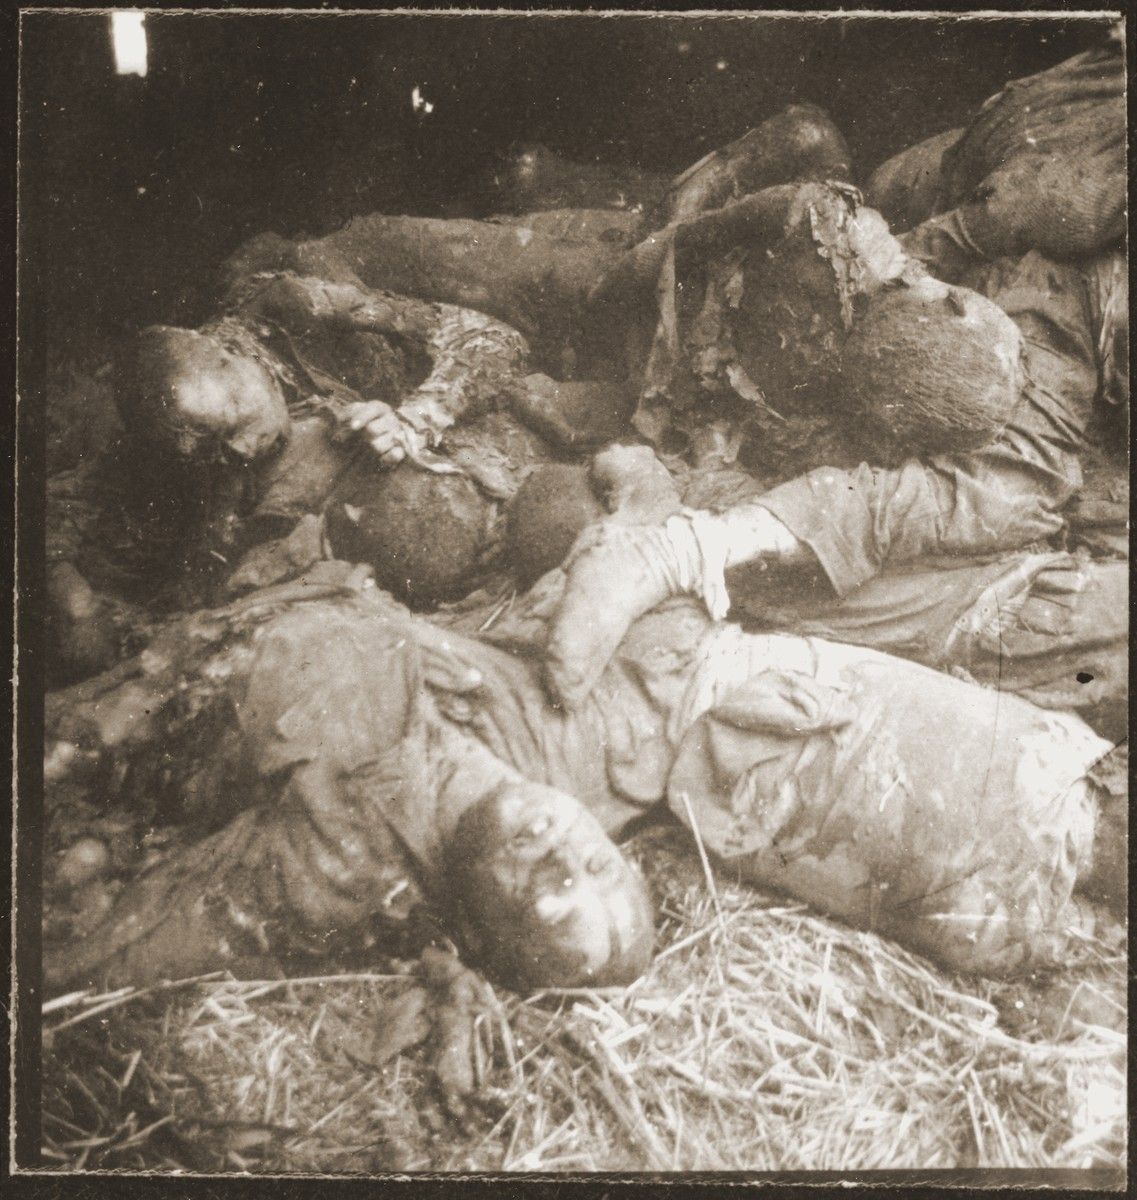 The charred corpses of prisoners burned alive by the SS in a barn outside Gardelegen.